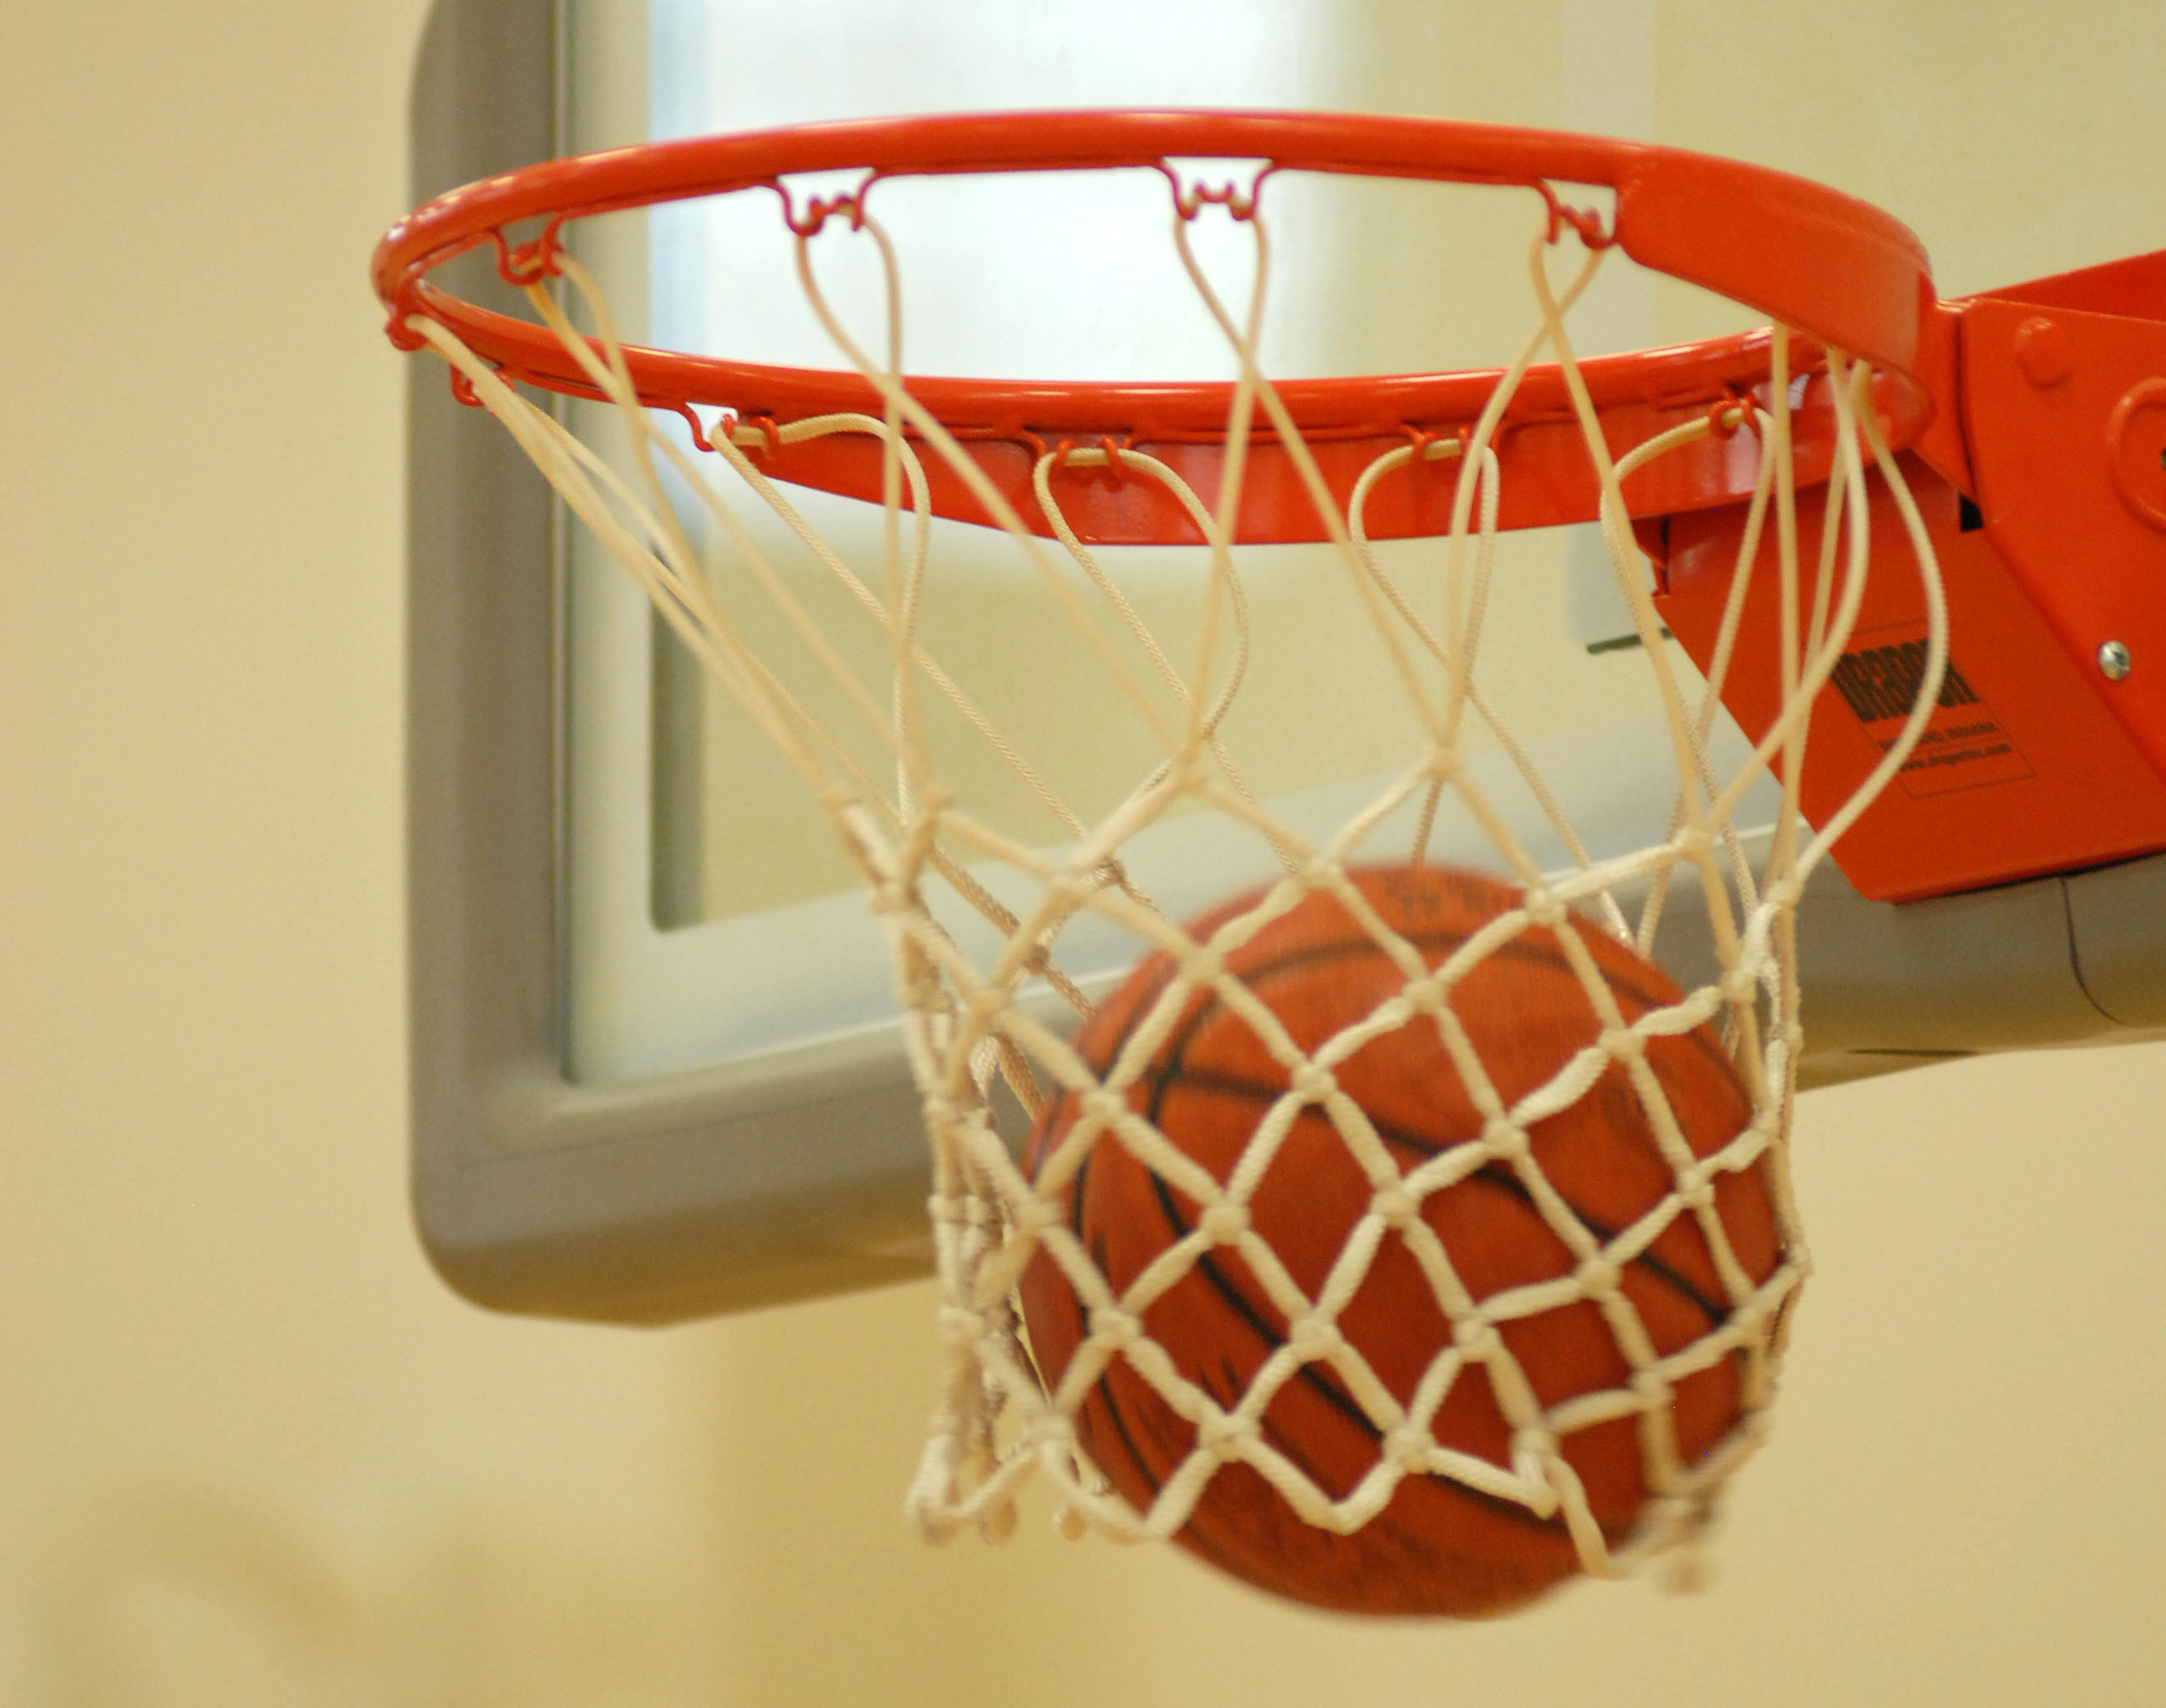 Intramural basketball begins Oct. 21